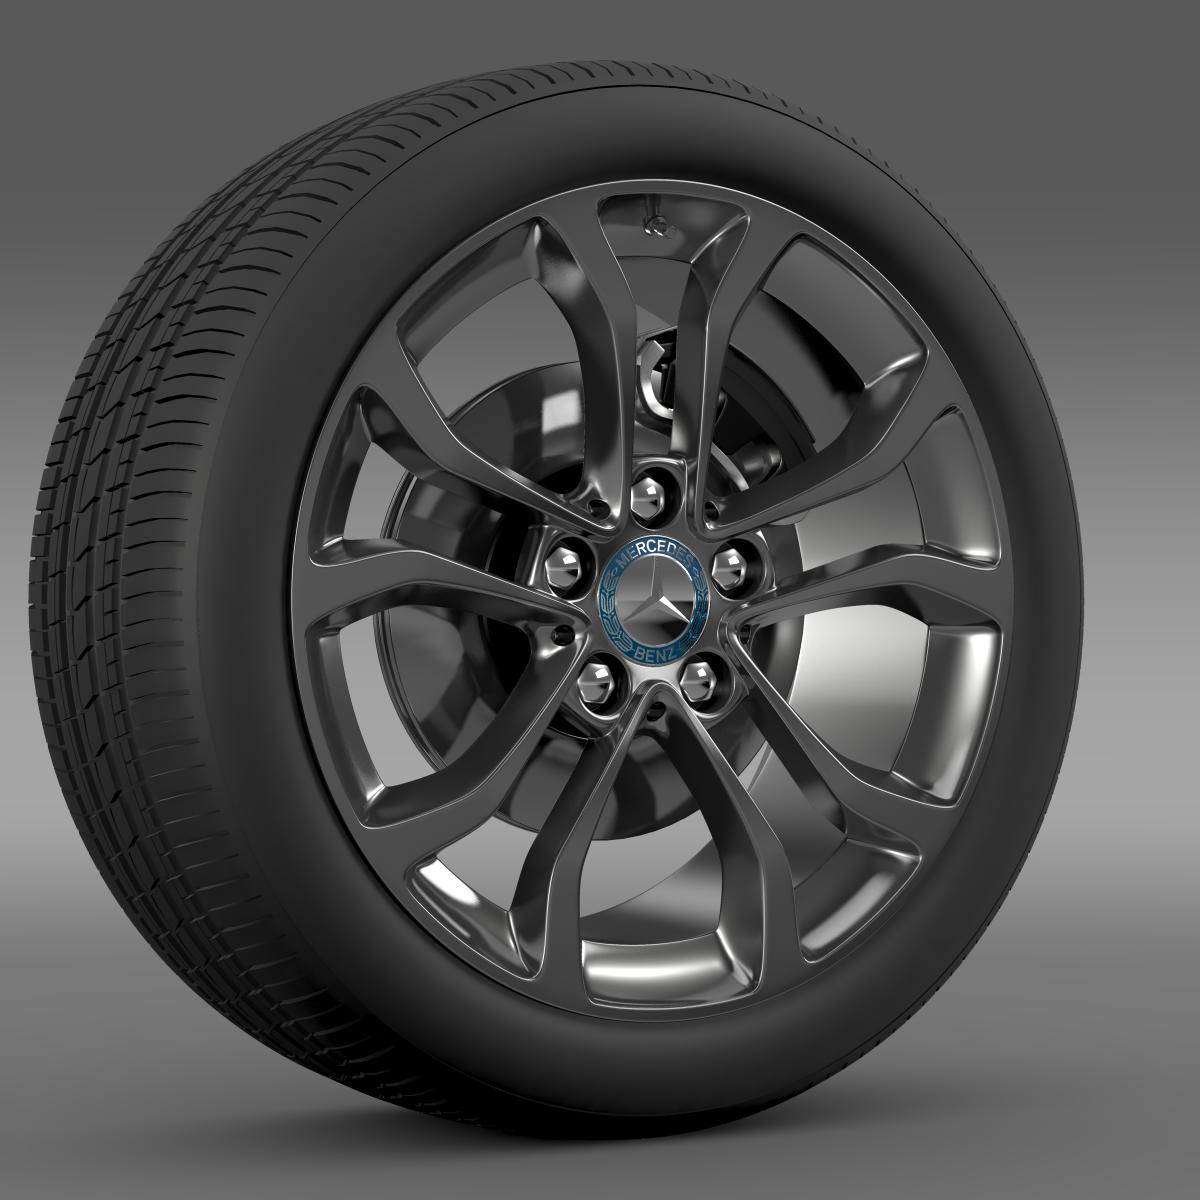 mercedes benz c 220 wheel 3d model 3ds max fbx c4d lwo ma mb hrc xsi obj 210758